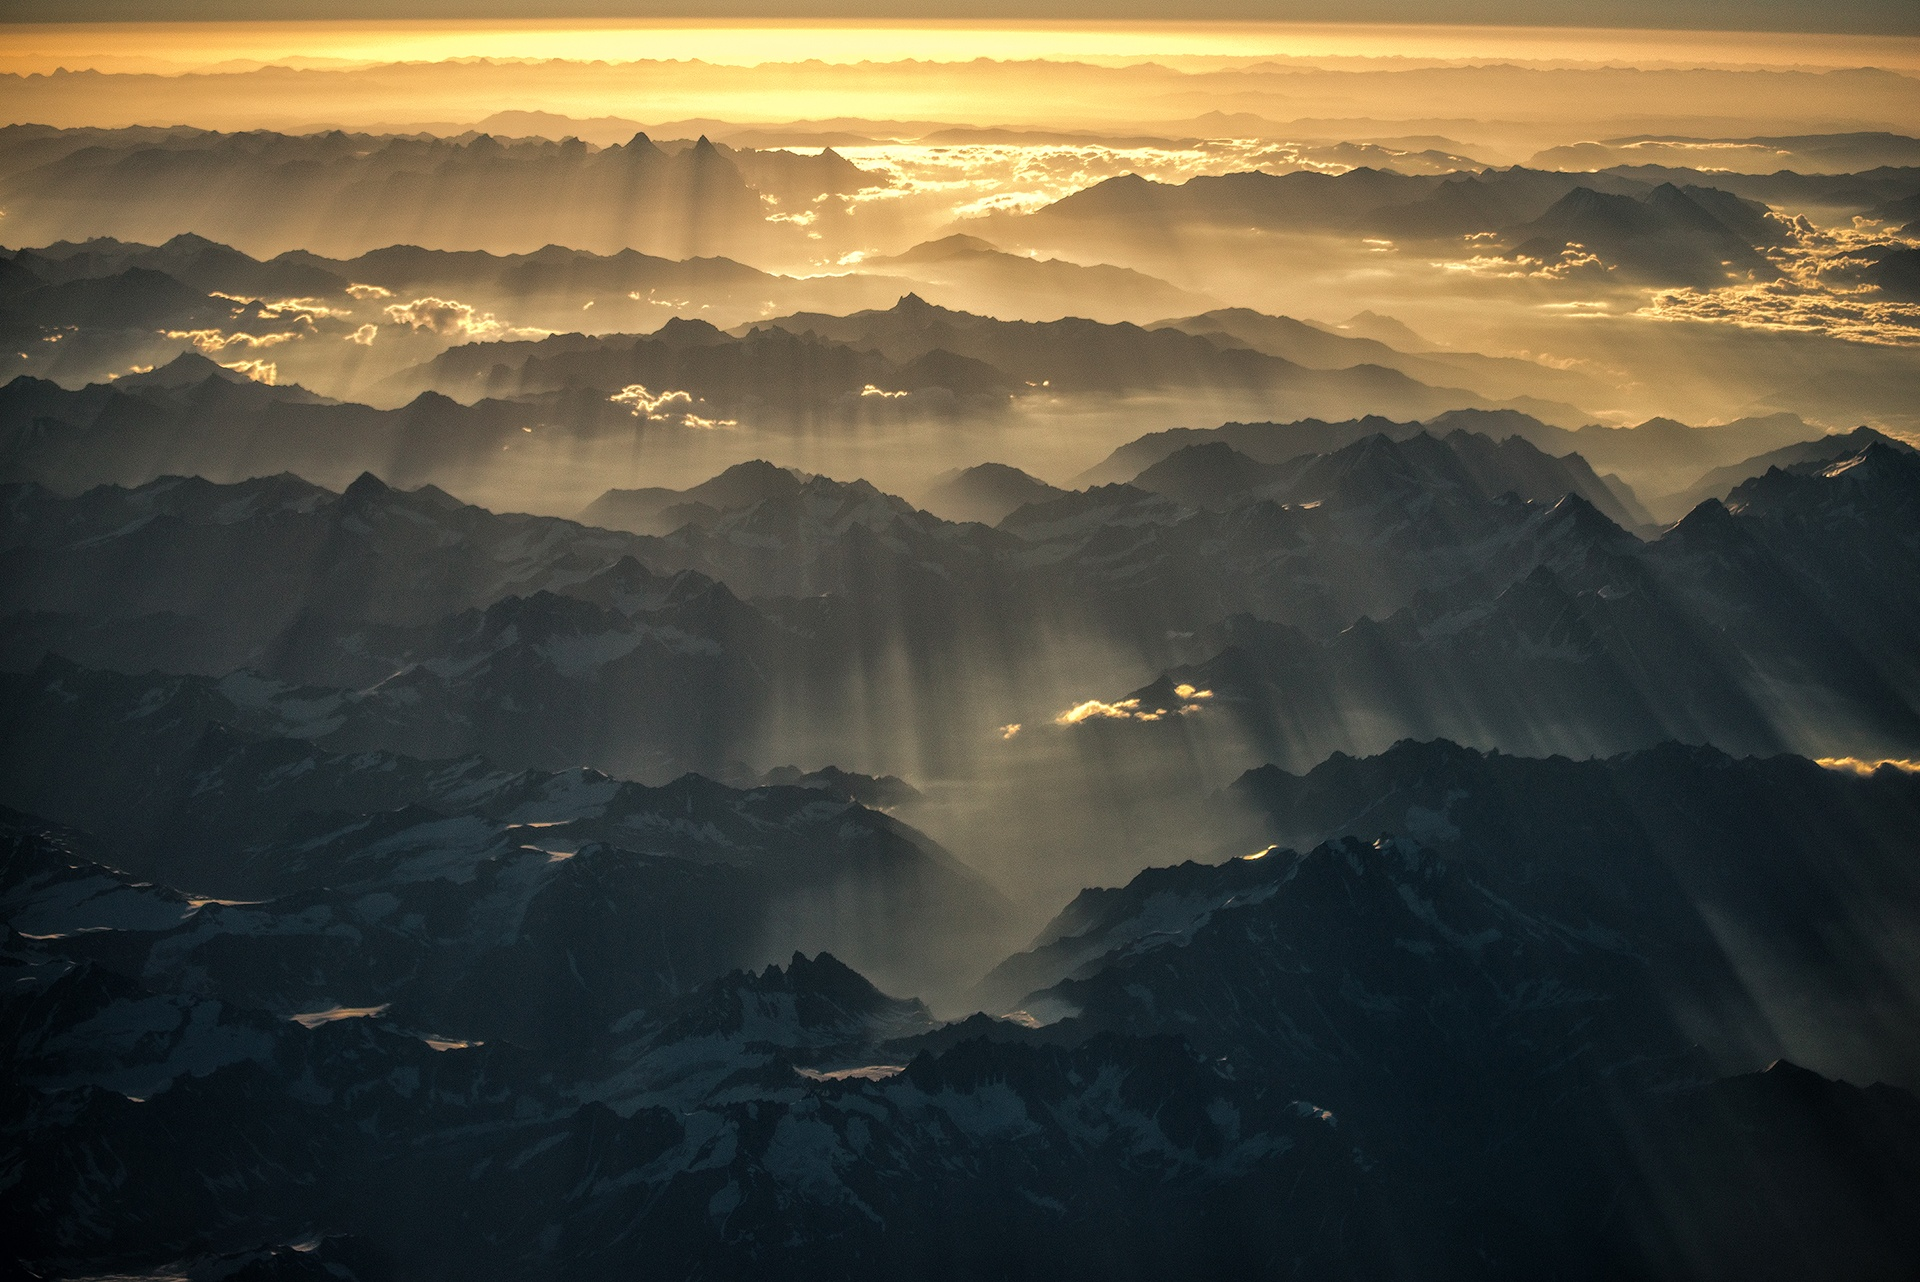 Streaks of sunlight shine over the Himalayas at dawn by Nutthavood Punpeng